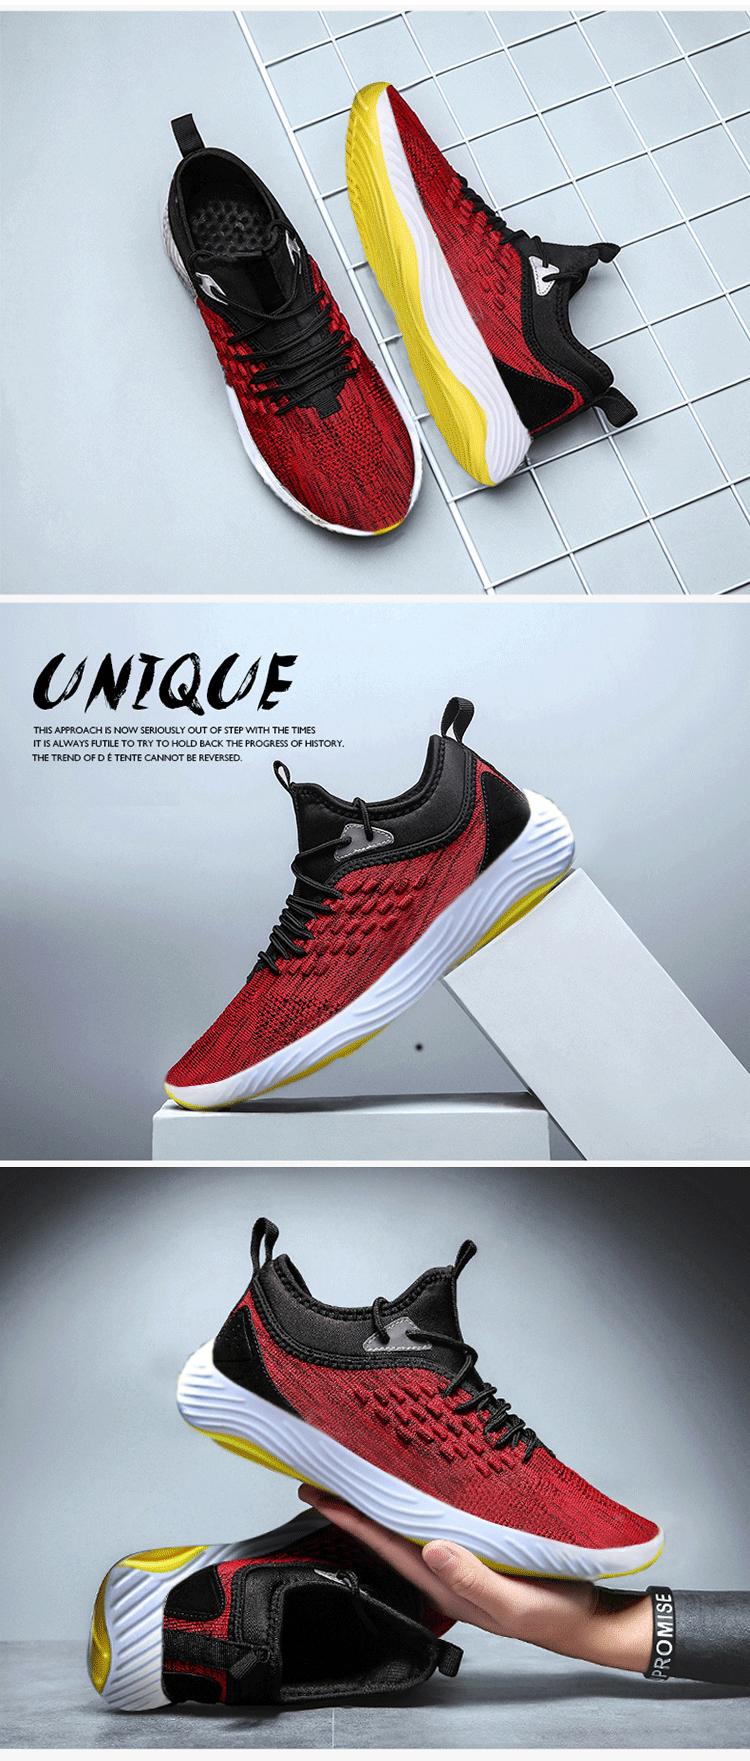 New style yong men white black red daily casual shoes outdoor running sport custom shoes